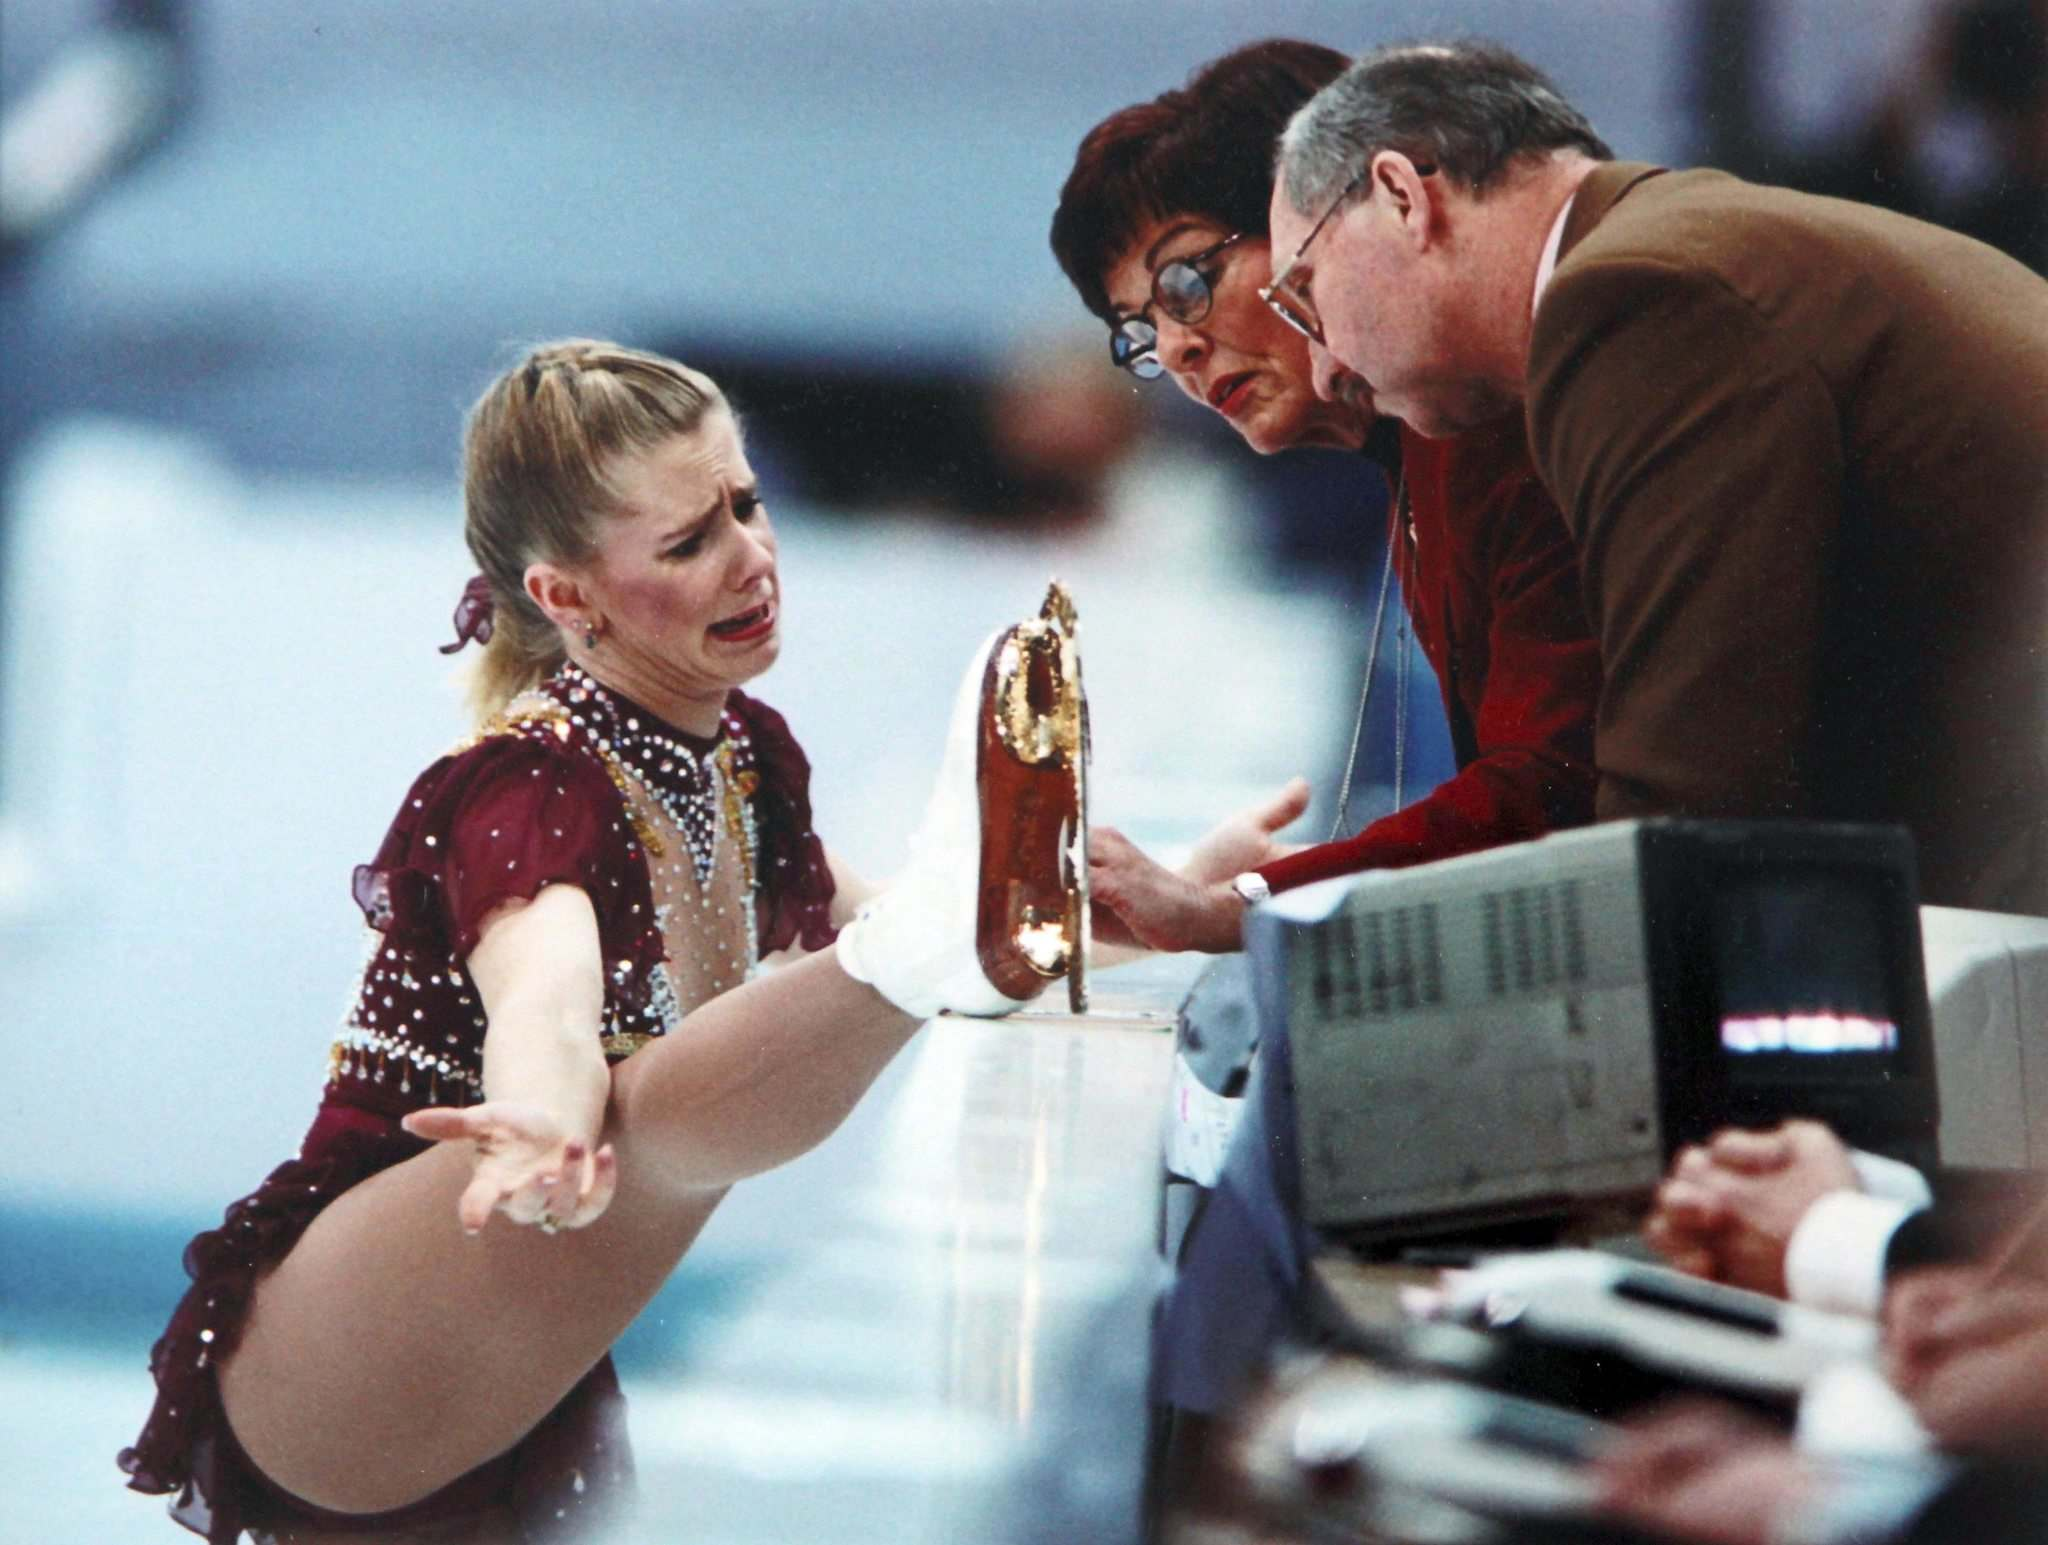 Tonya Harding&rsquo;s iconic moment was captured by the Free Press&rsquo;s own Boris Minkevich, fresh out of college at the time and having wheeled and dealed his way to the 1994 Winter Olympics in Lillehammer. (Boris Minkevich photo)</p>